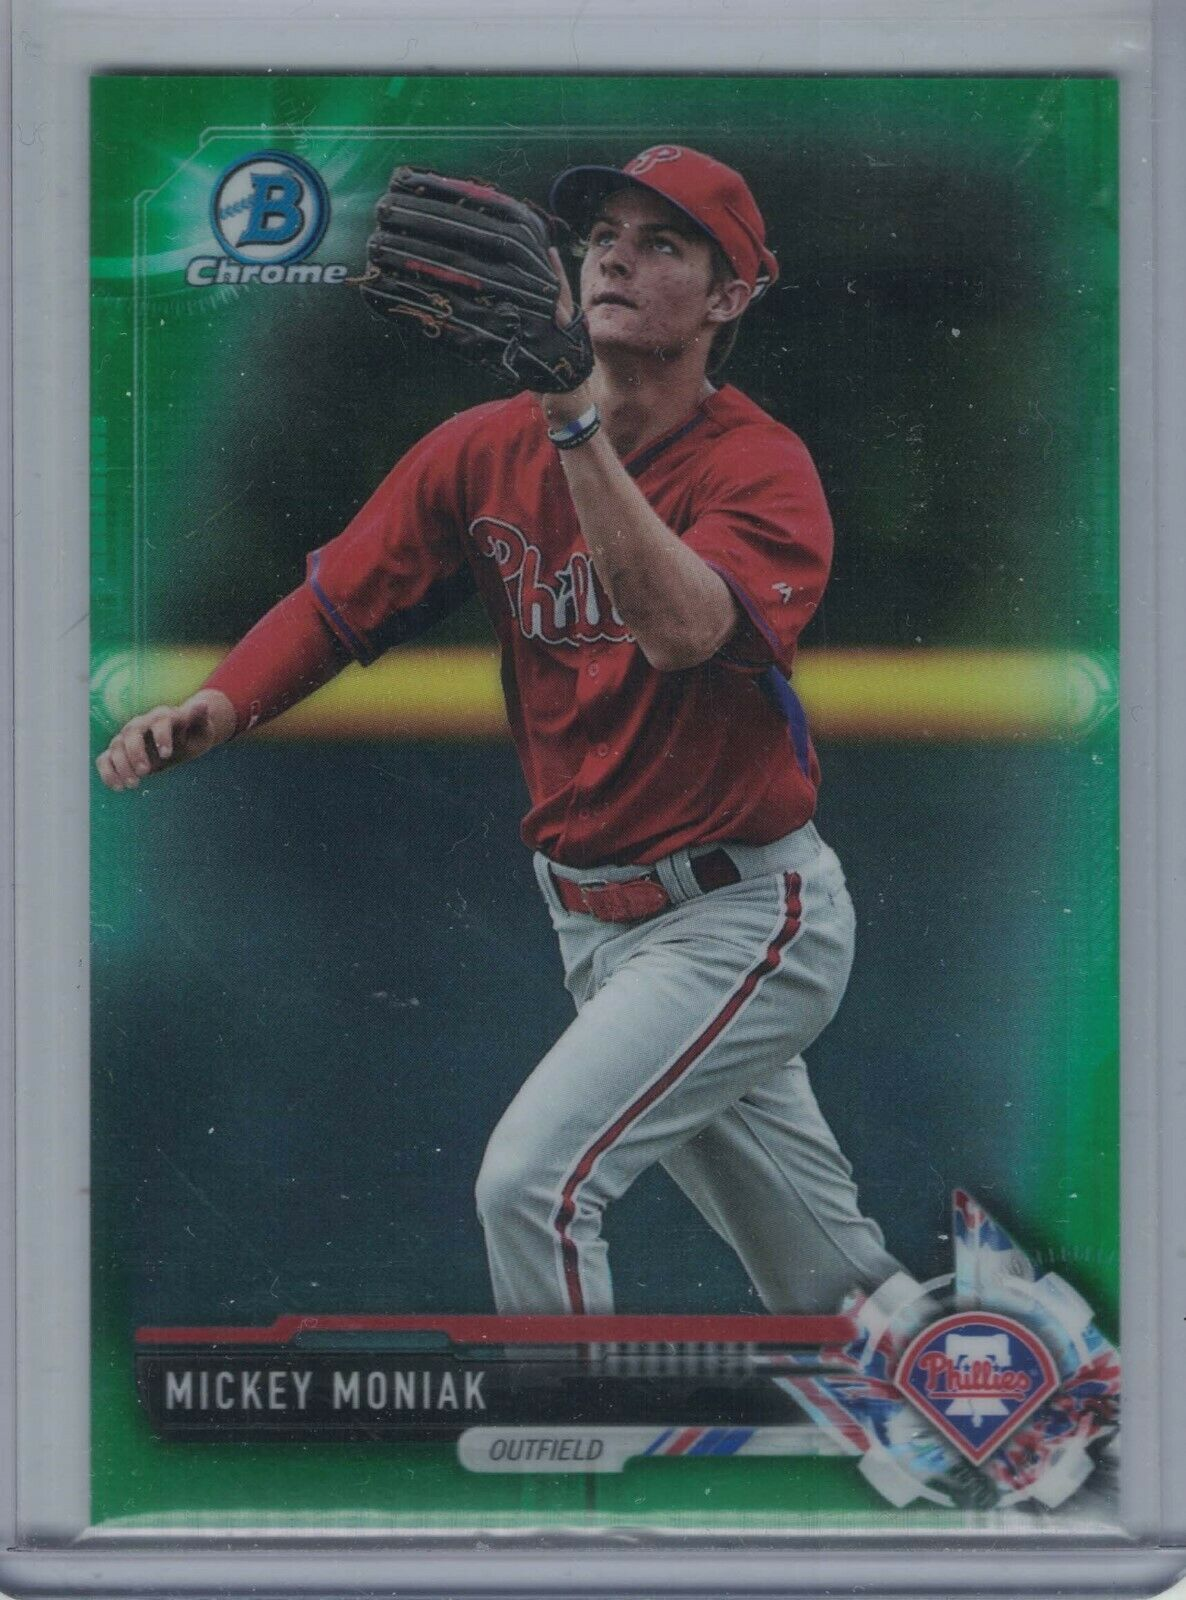 Primary image for MICKEY MONIAK 2017 Bowman Chrome Prospects Green Refractor #78/99 #BCP135  E1579